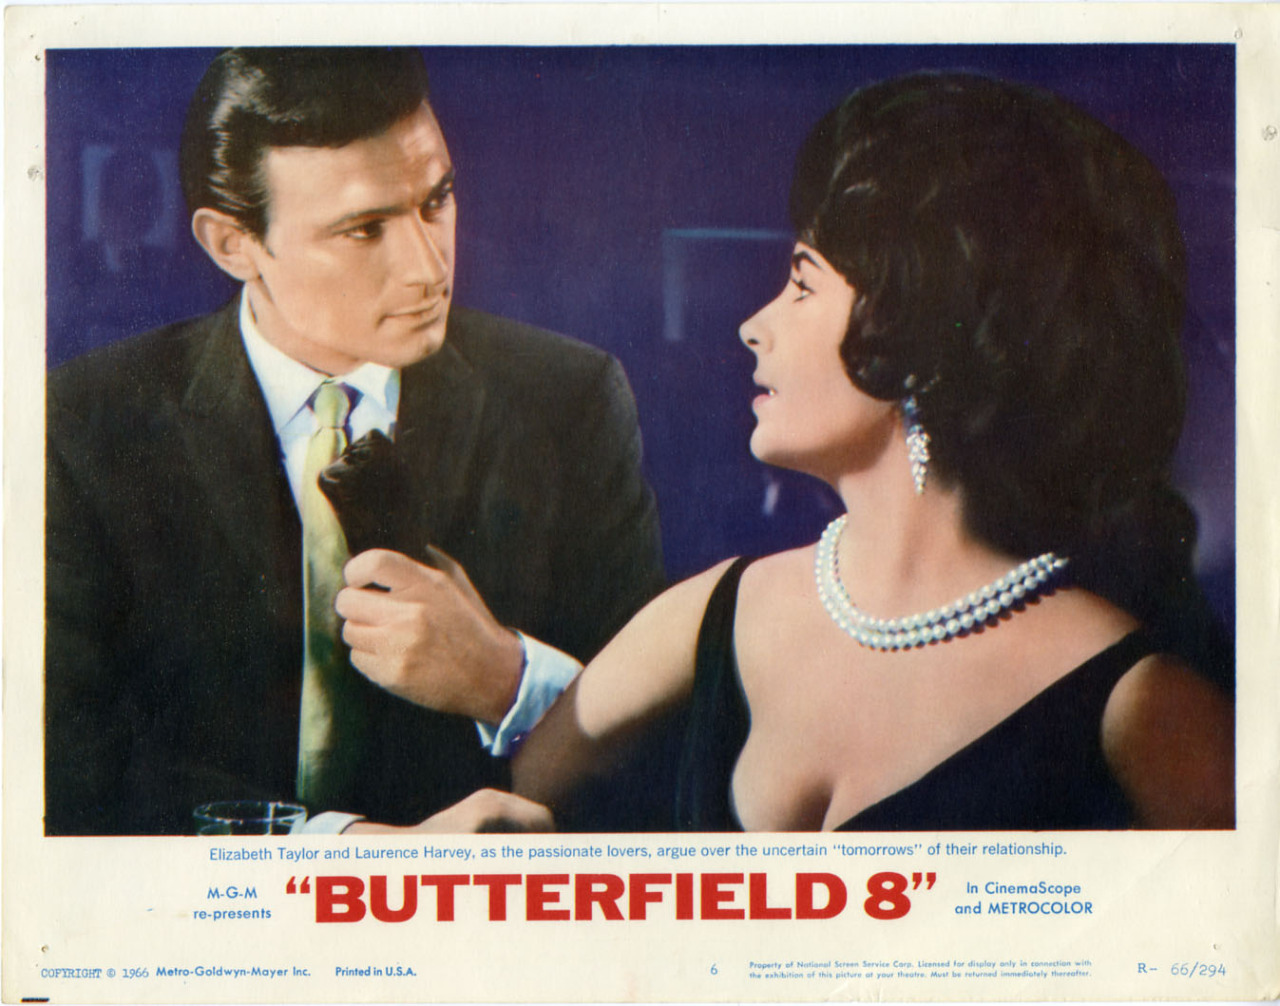 Is It Any Good? Butterfield 8